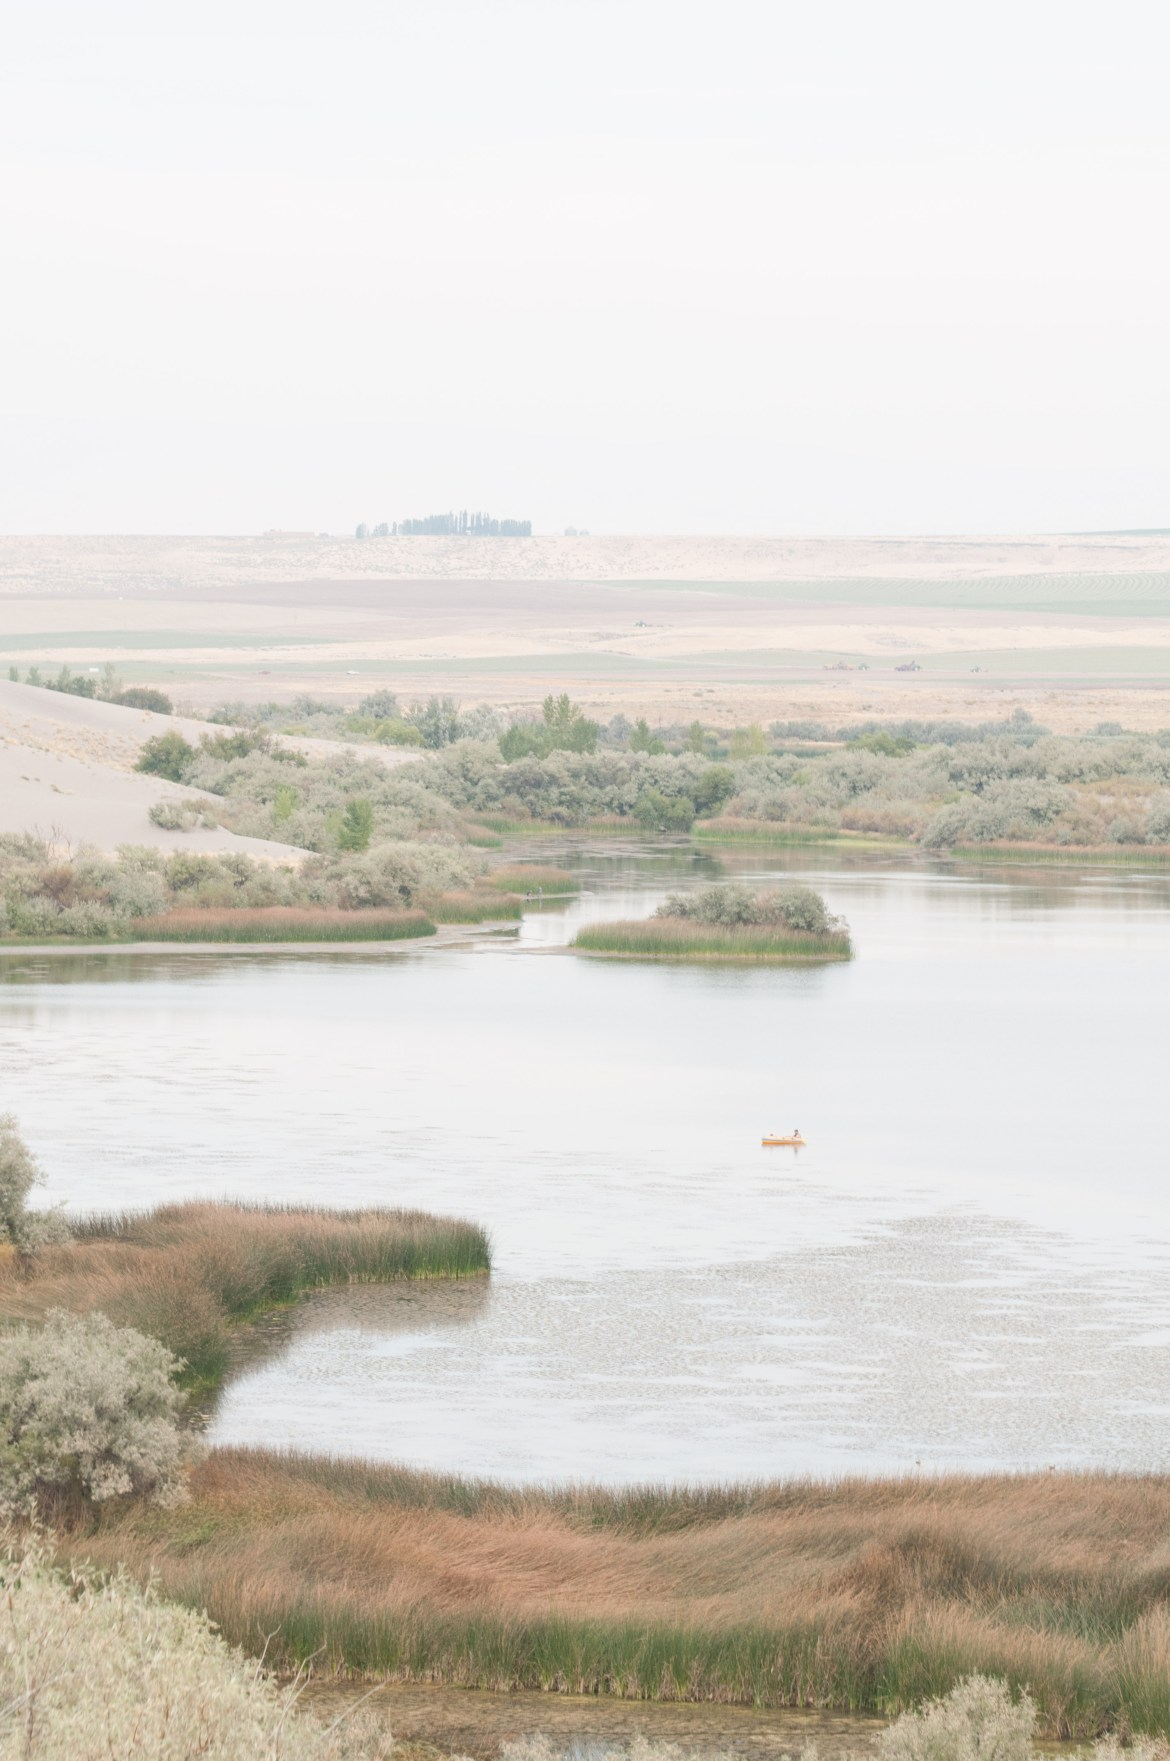 A view to a small lake and the Snake River valley from atop the largest sand dune at Southwest Idaho's Bruneau Sand Dunes State Park. The dunes are the largest free-standing sand dunes in North America.